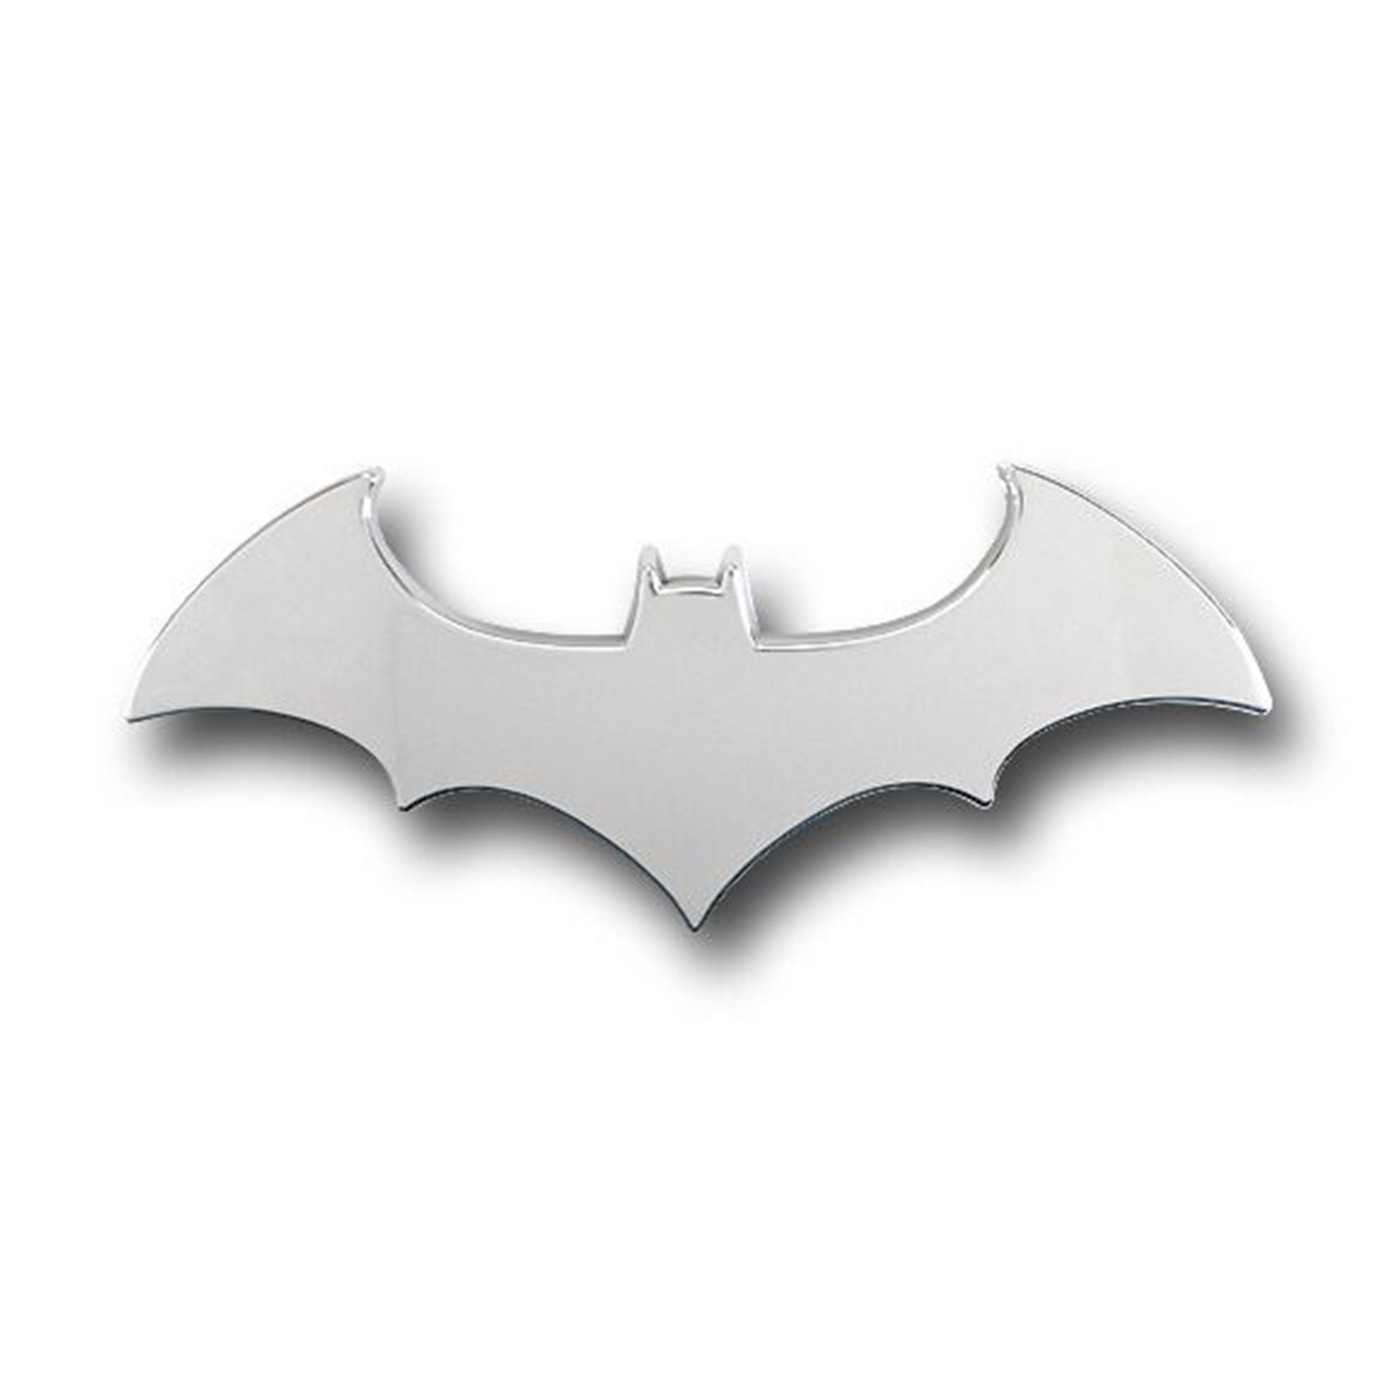 Batman Metal Symbol Adhesive Car Emblem